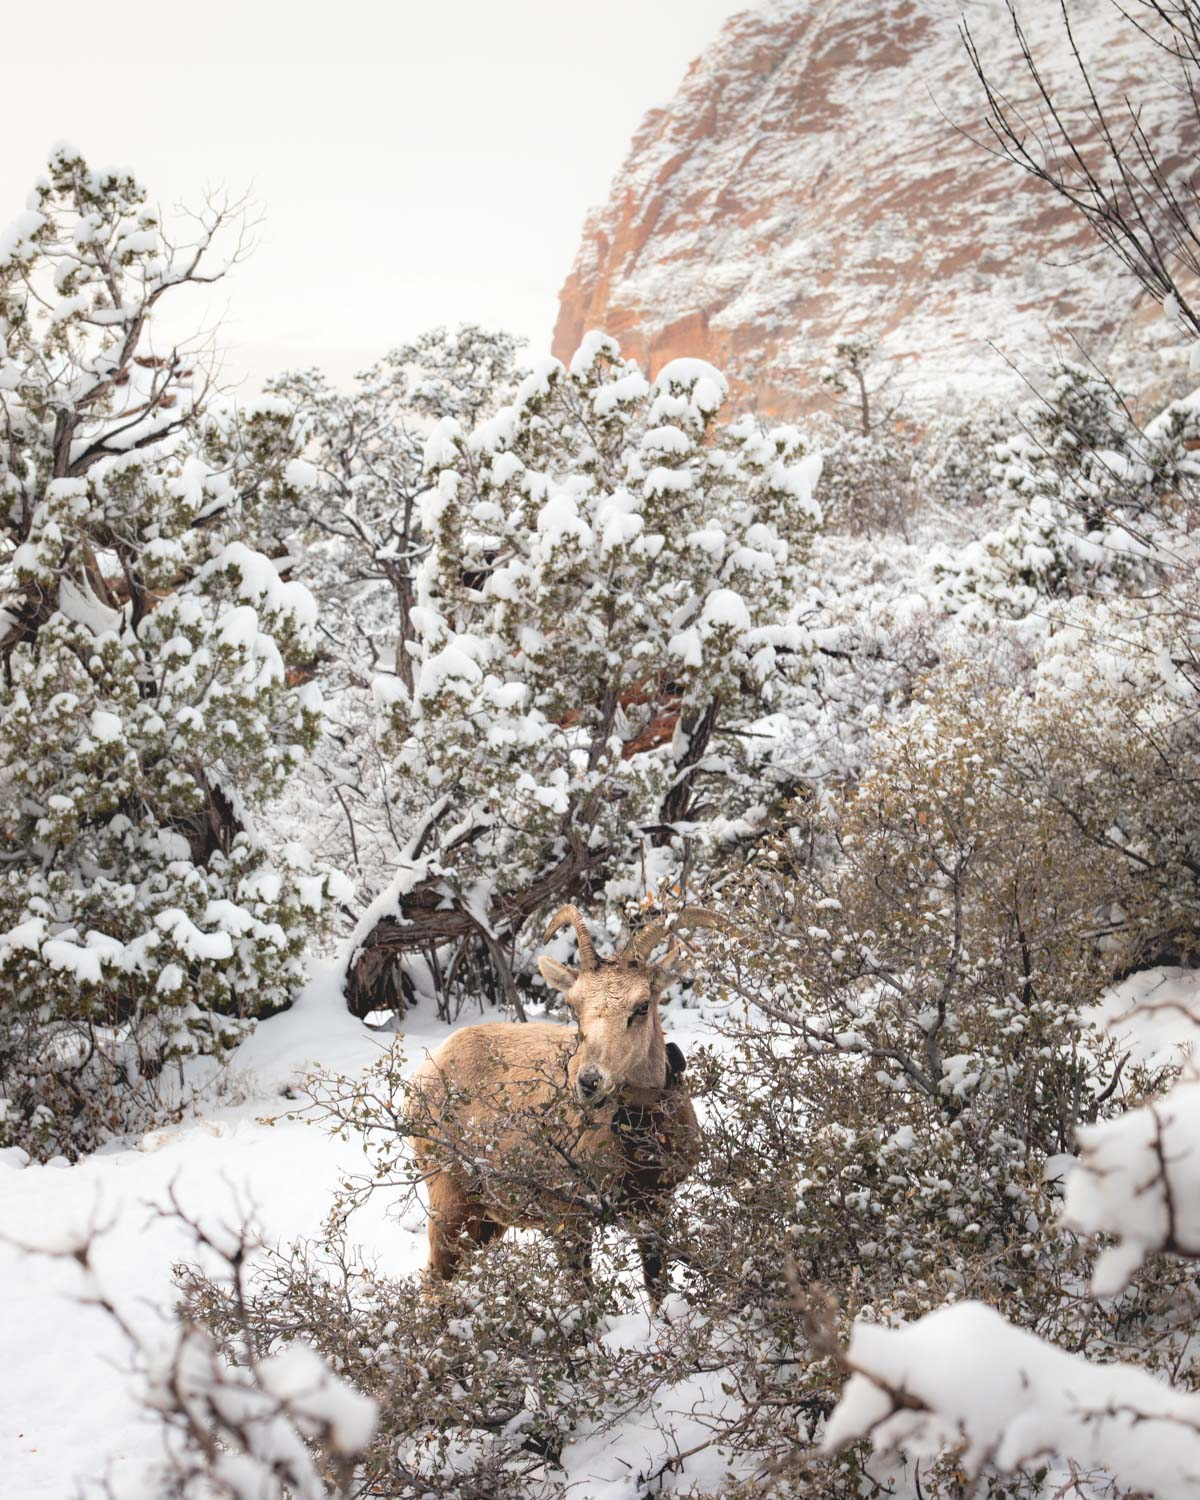 Even the Bighorn Sheep feel the cold!